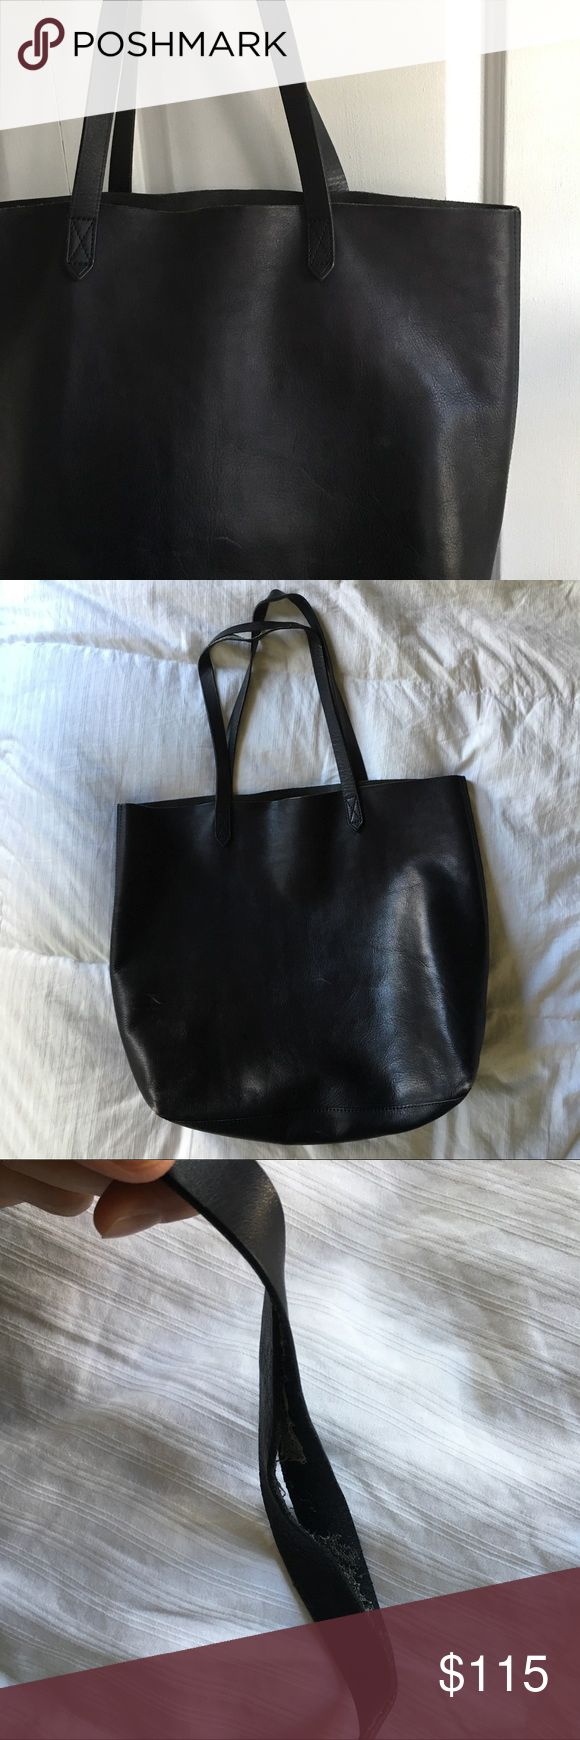 Madewell Transport Tote in Deep Navy Gently worn. A few discreet scratches but not too noticeable. The corners show wear as well as the one handle that needs to be glued together. This does not affect the sturdiness of the bag. All signs of wear shown in photos. Madewell Bags Totes